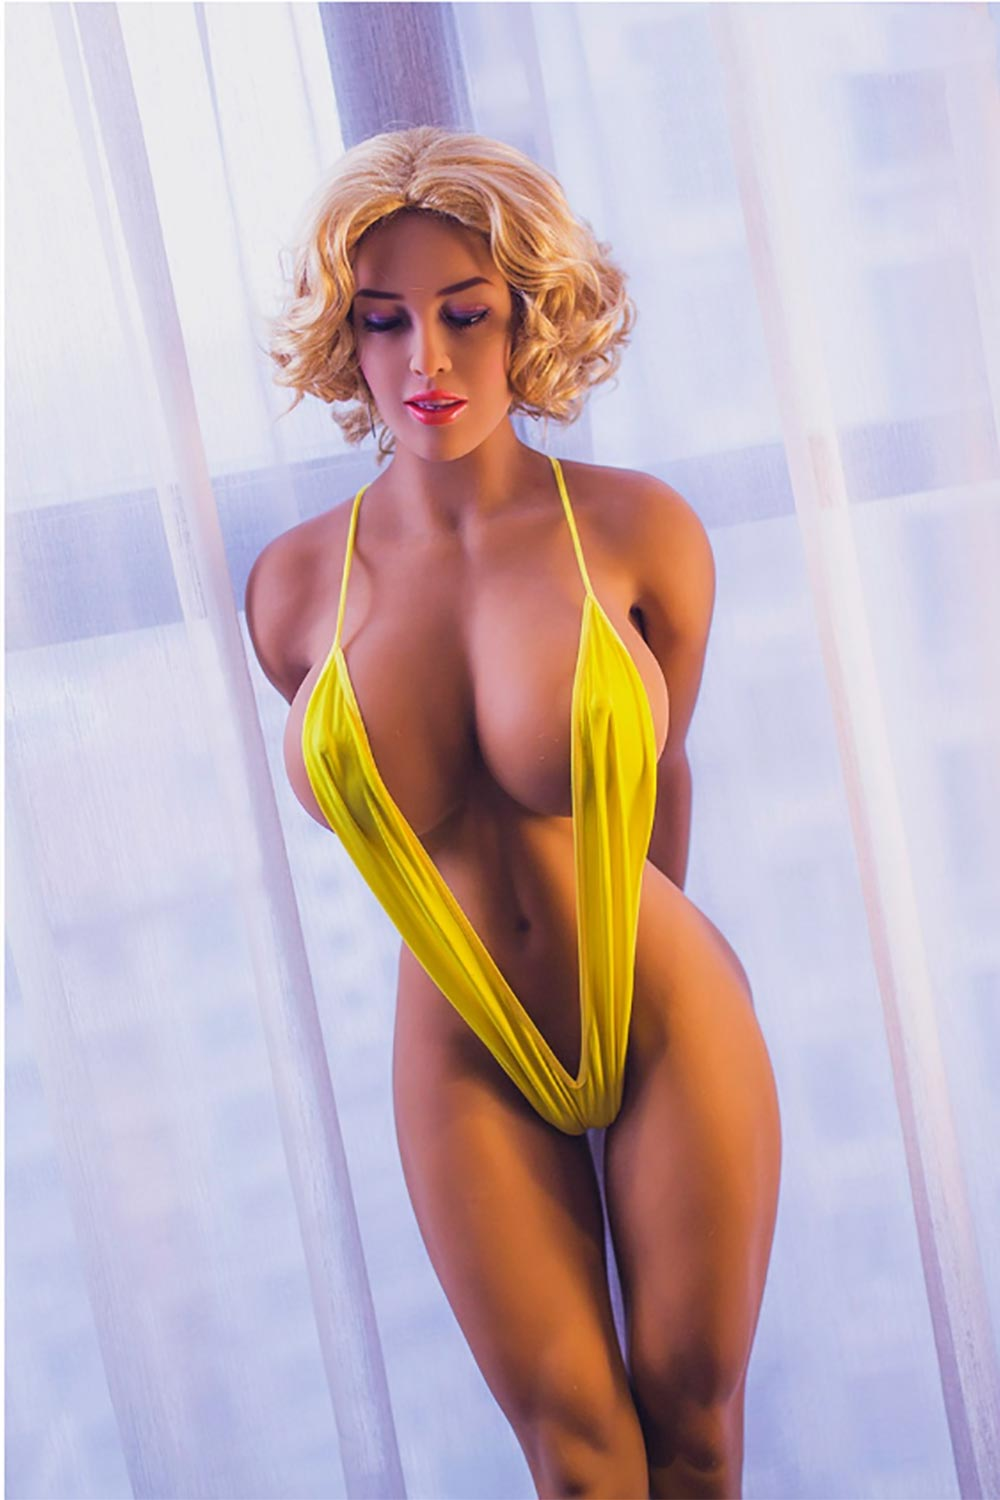 Big breasted sex doll with short blond hair